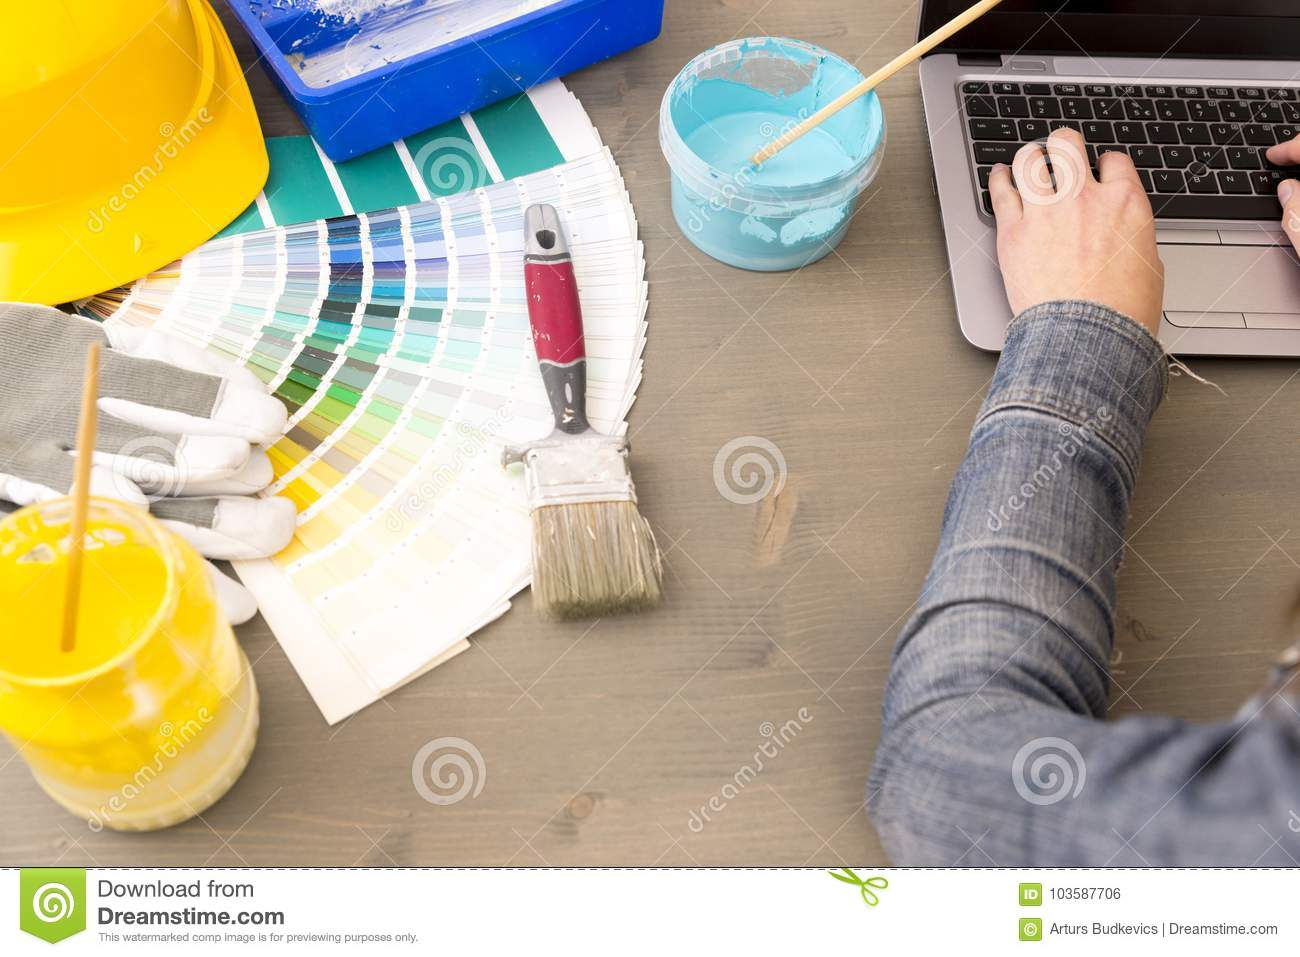 Renovation Decoration Interior Design Renovation And Decoration Concept Woman Working